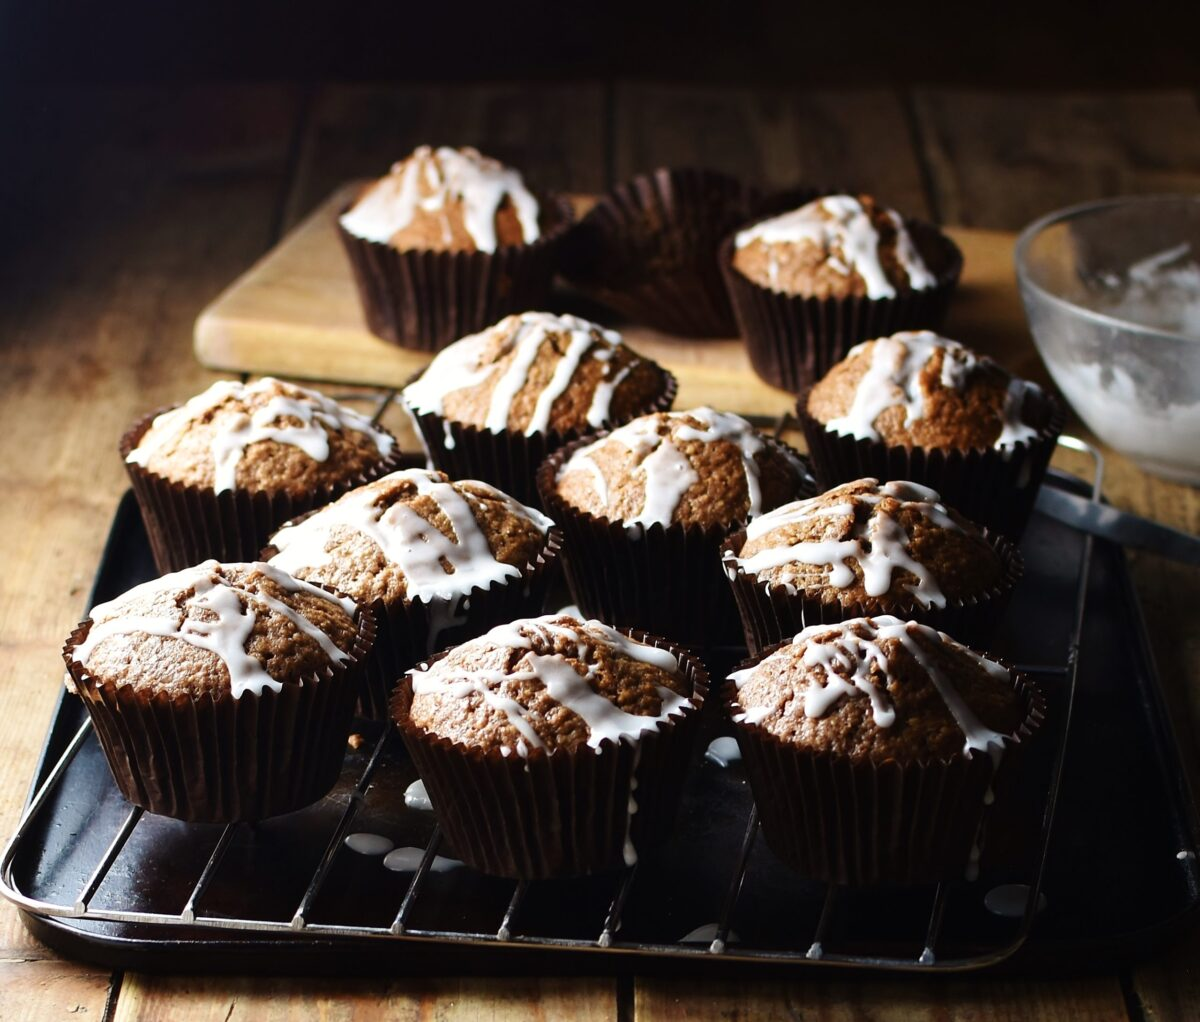 Side view of gingerbread muffins on top of rack and tray.